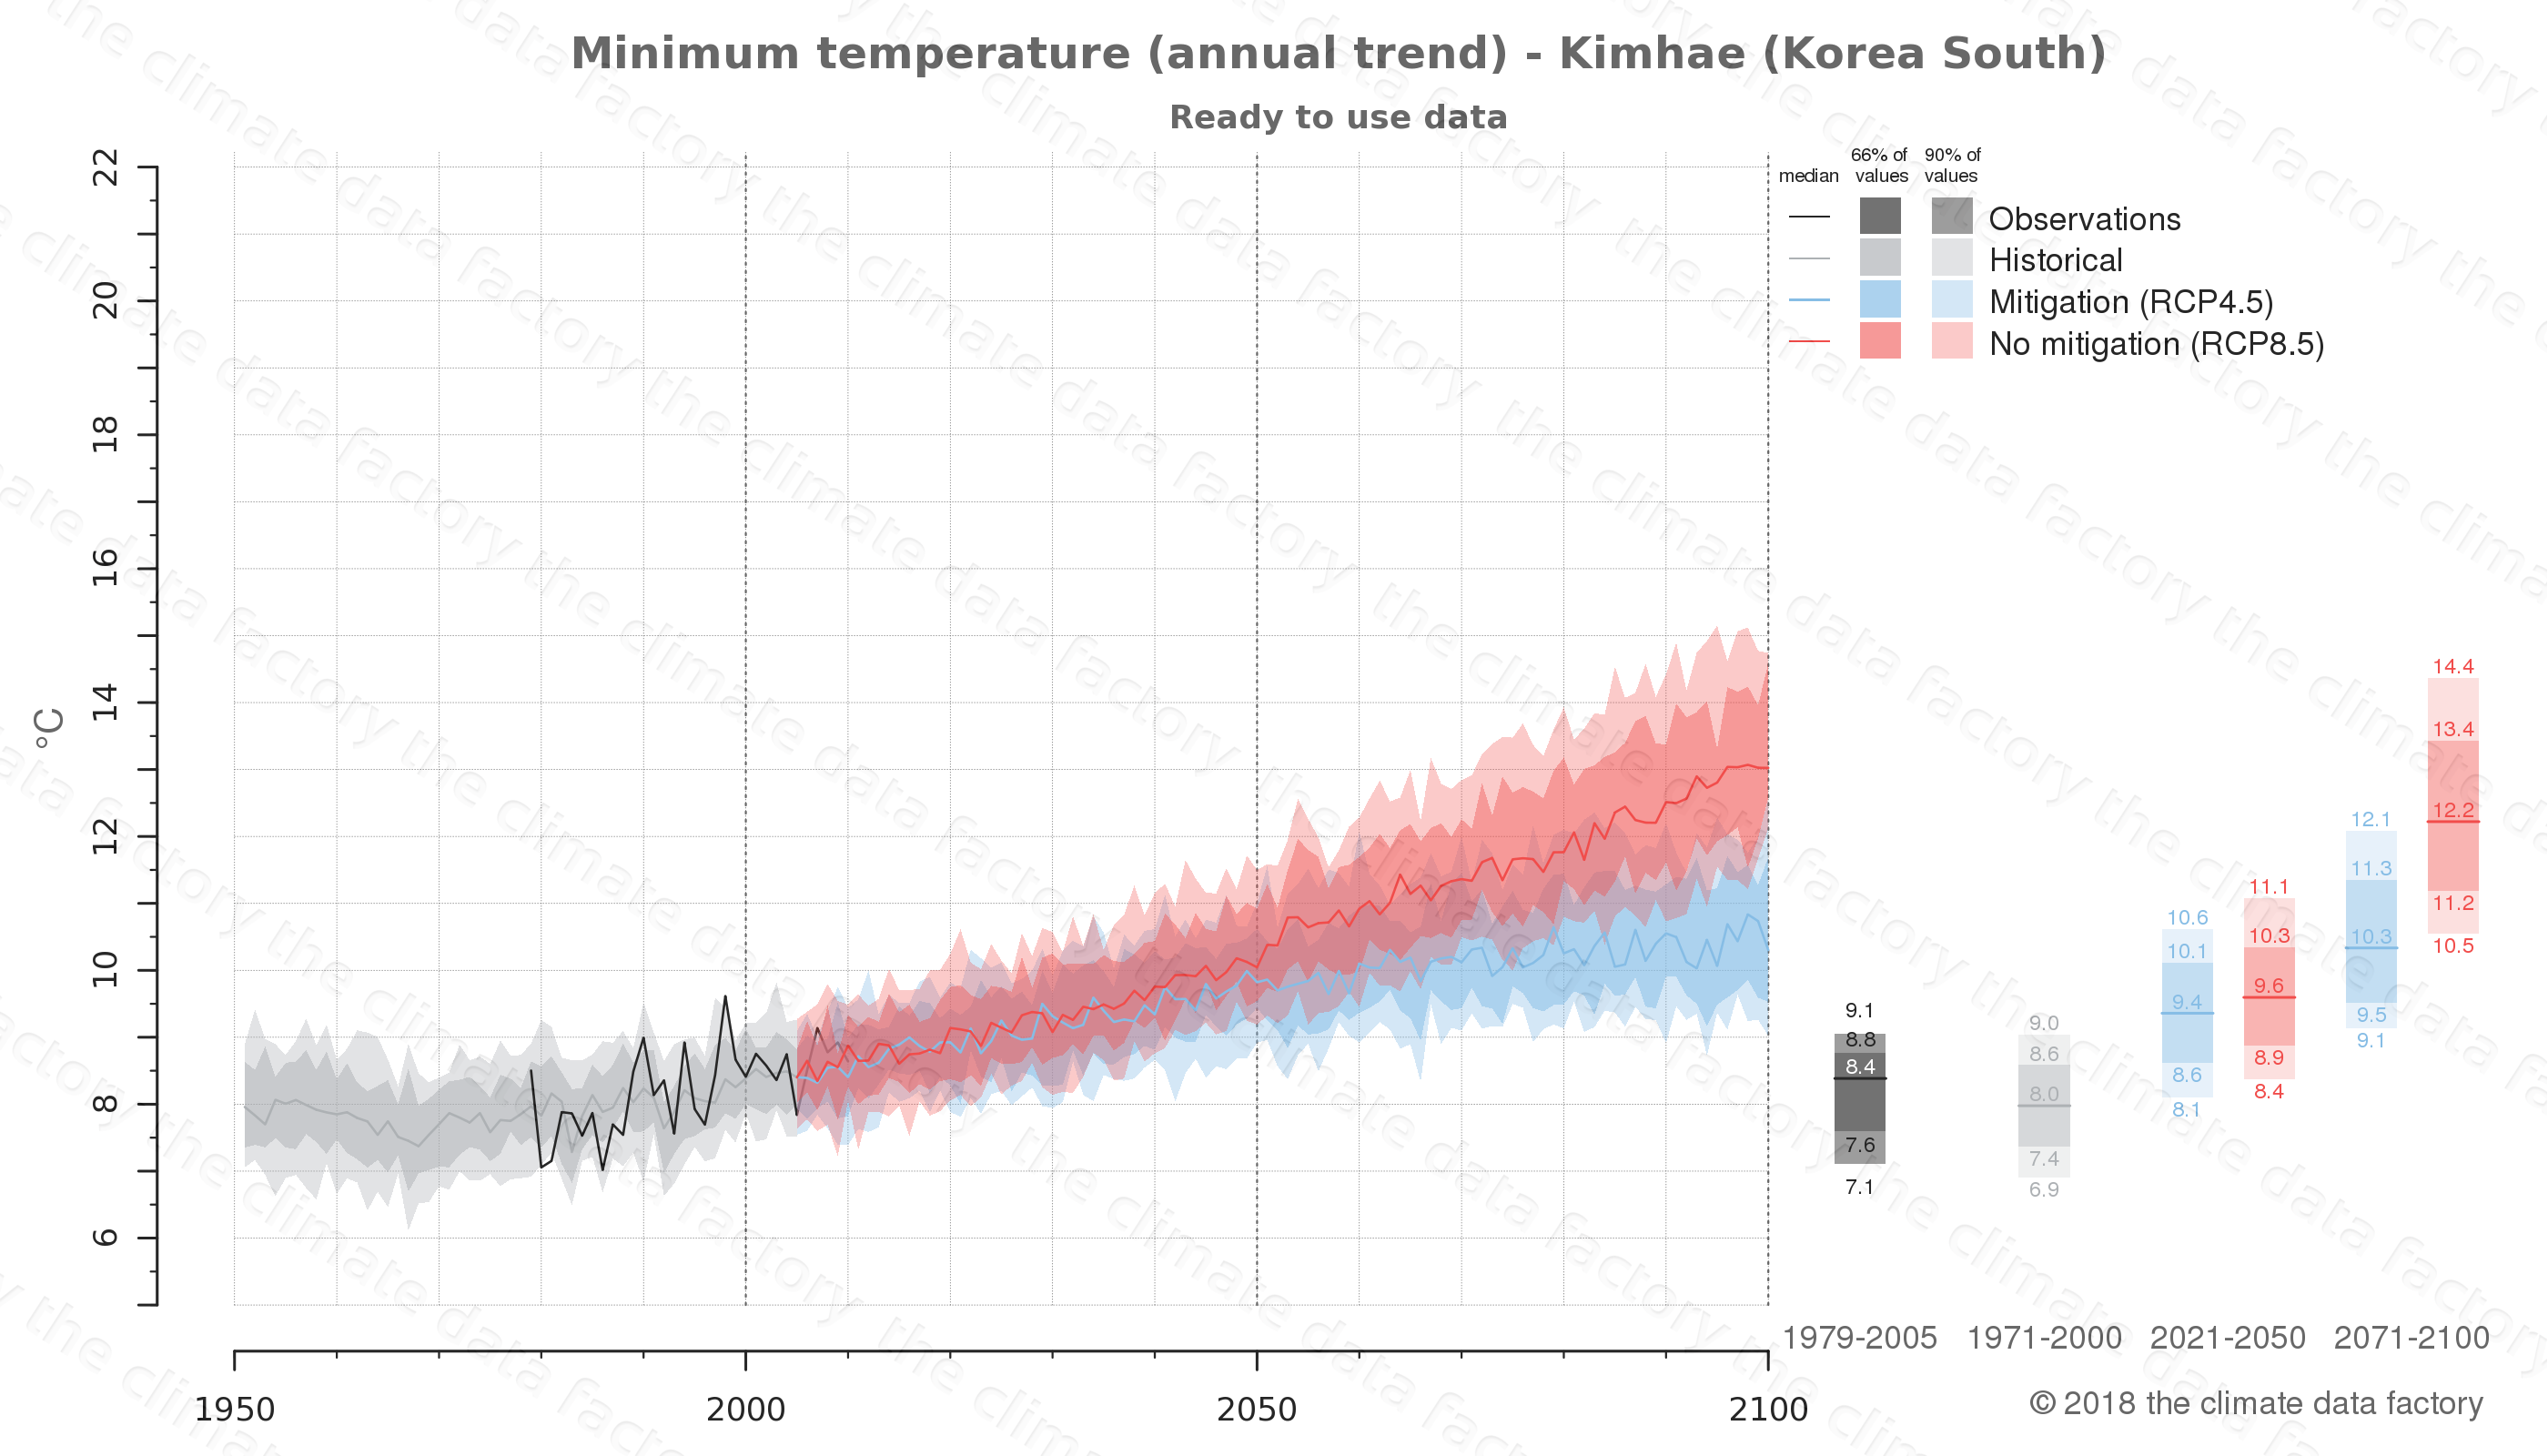 climate change data policy adaptation climate graph city data minimum-temperature kimhae south korea